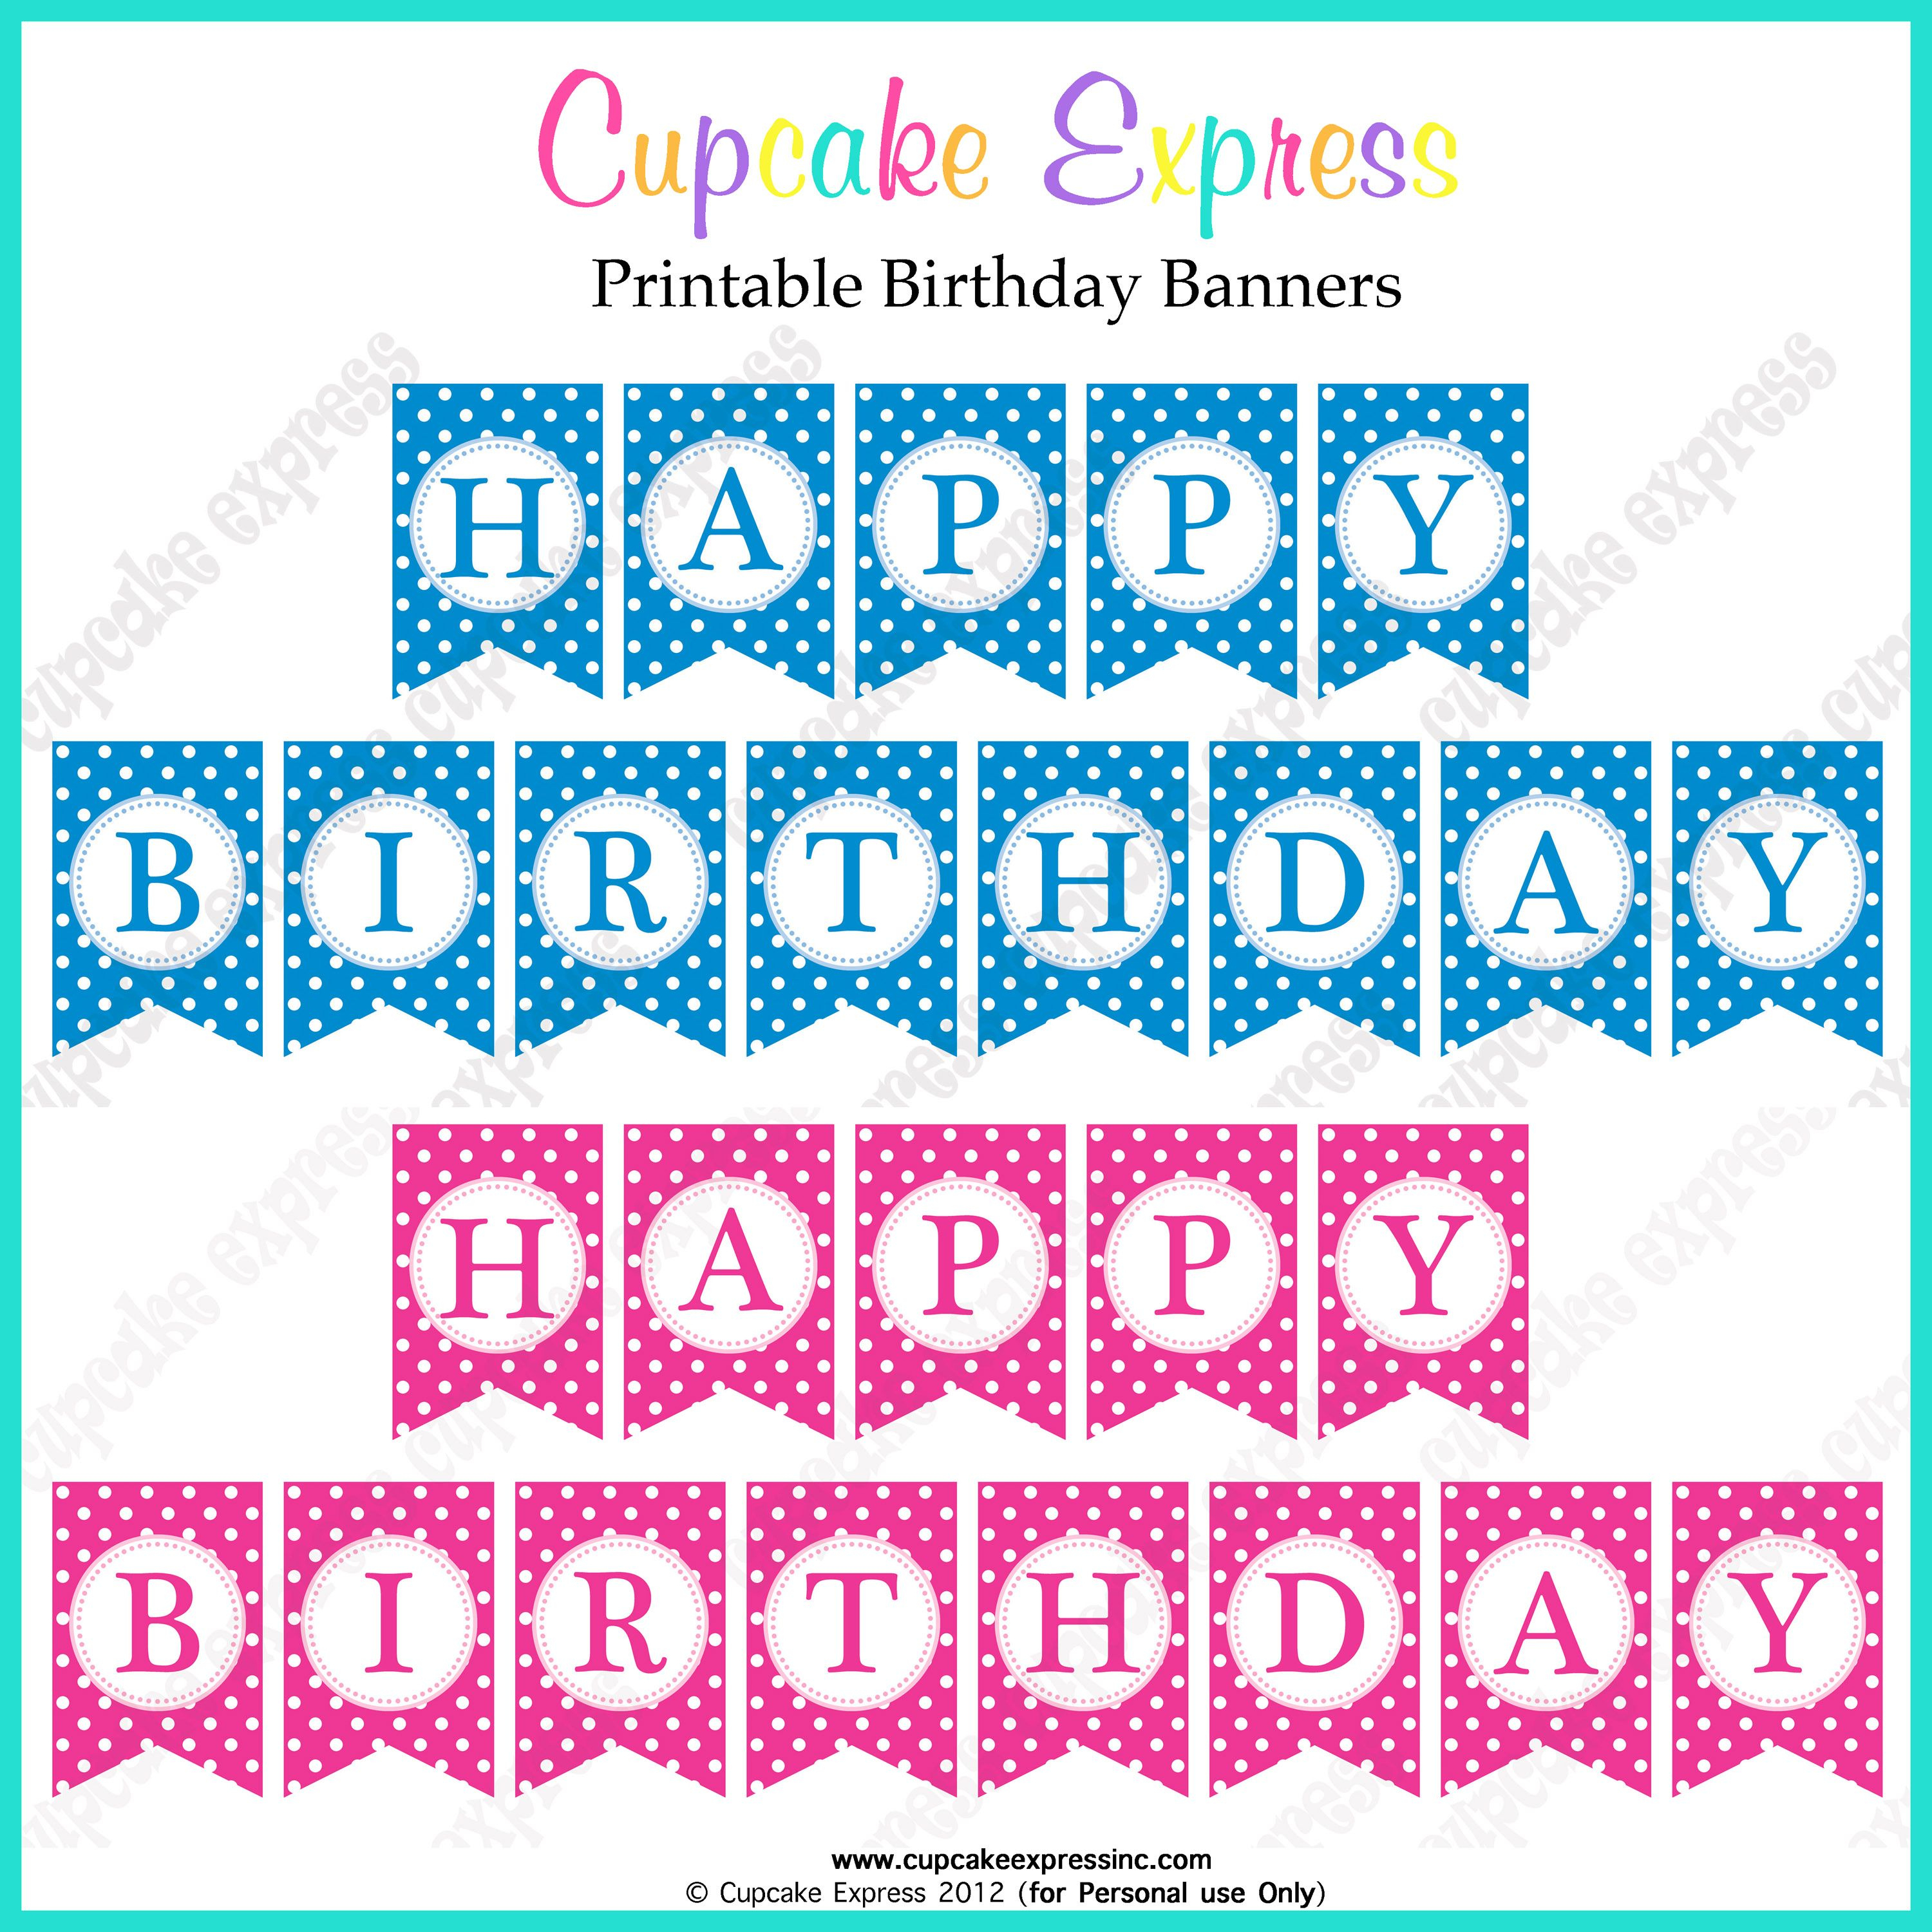 Free Printable Happy Birthday Banners Pink Blue | Free Printables - Free Printable Happy Birthday Signs